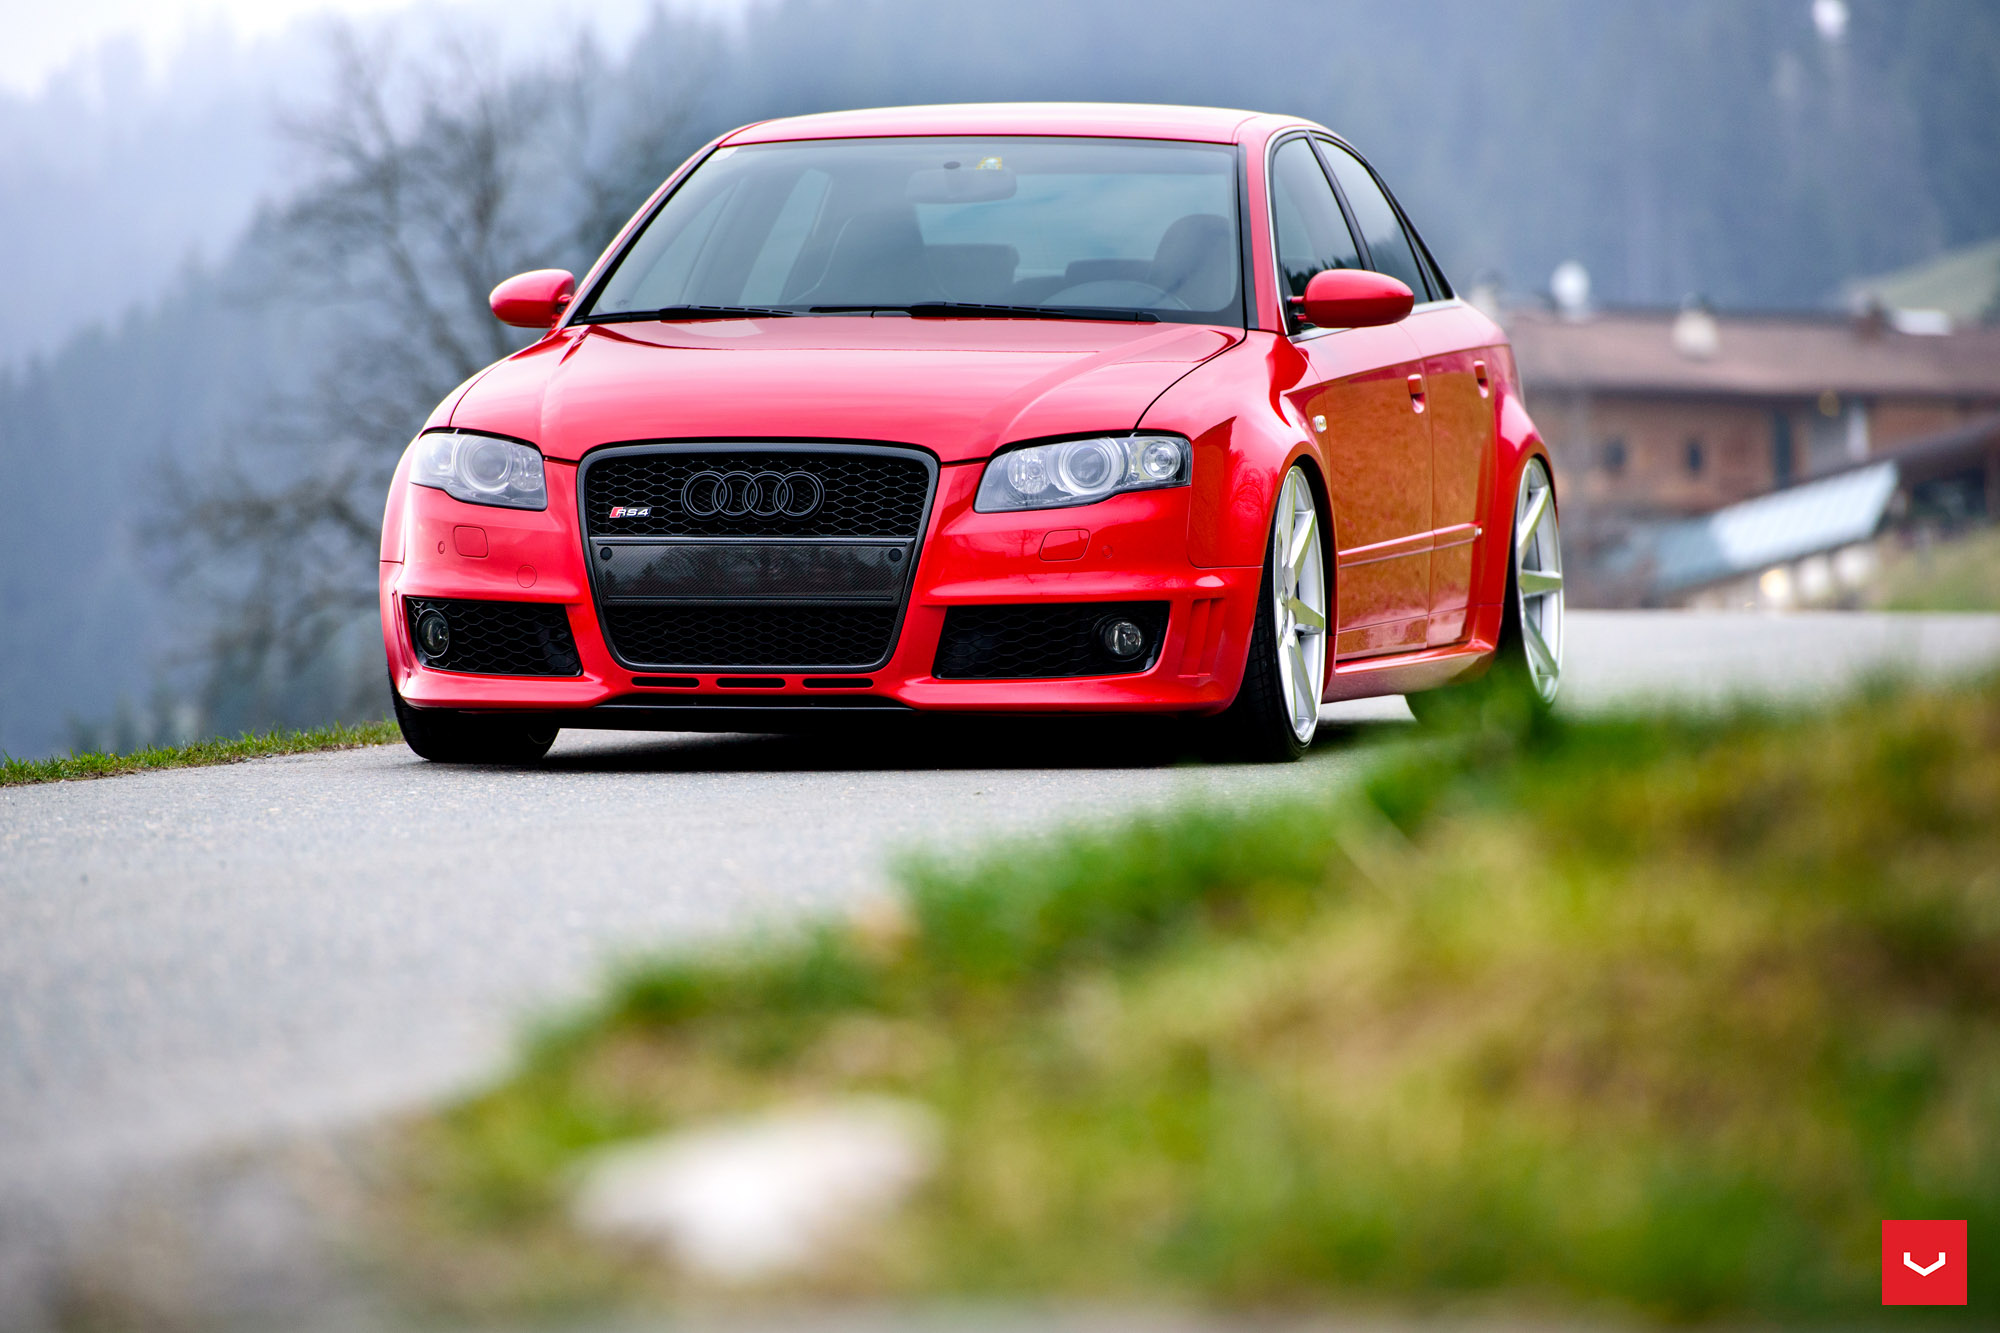 Audi Rs4 Hd Wallpaper Background Image 2000x1333 Id 698244